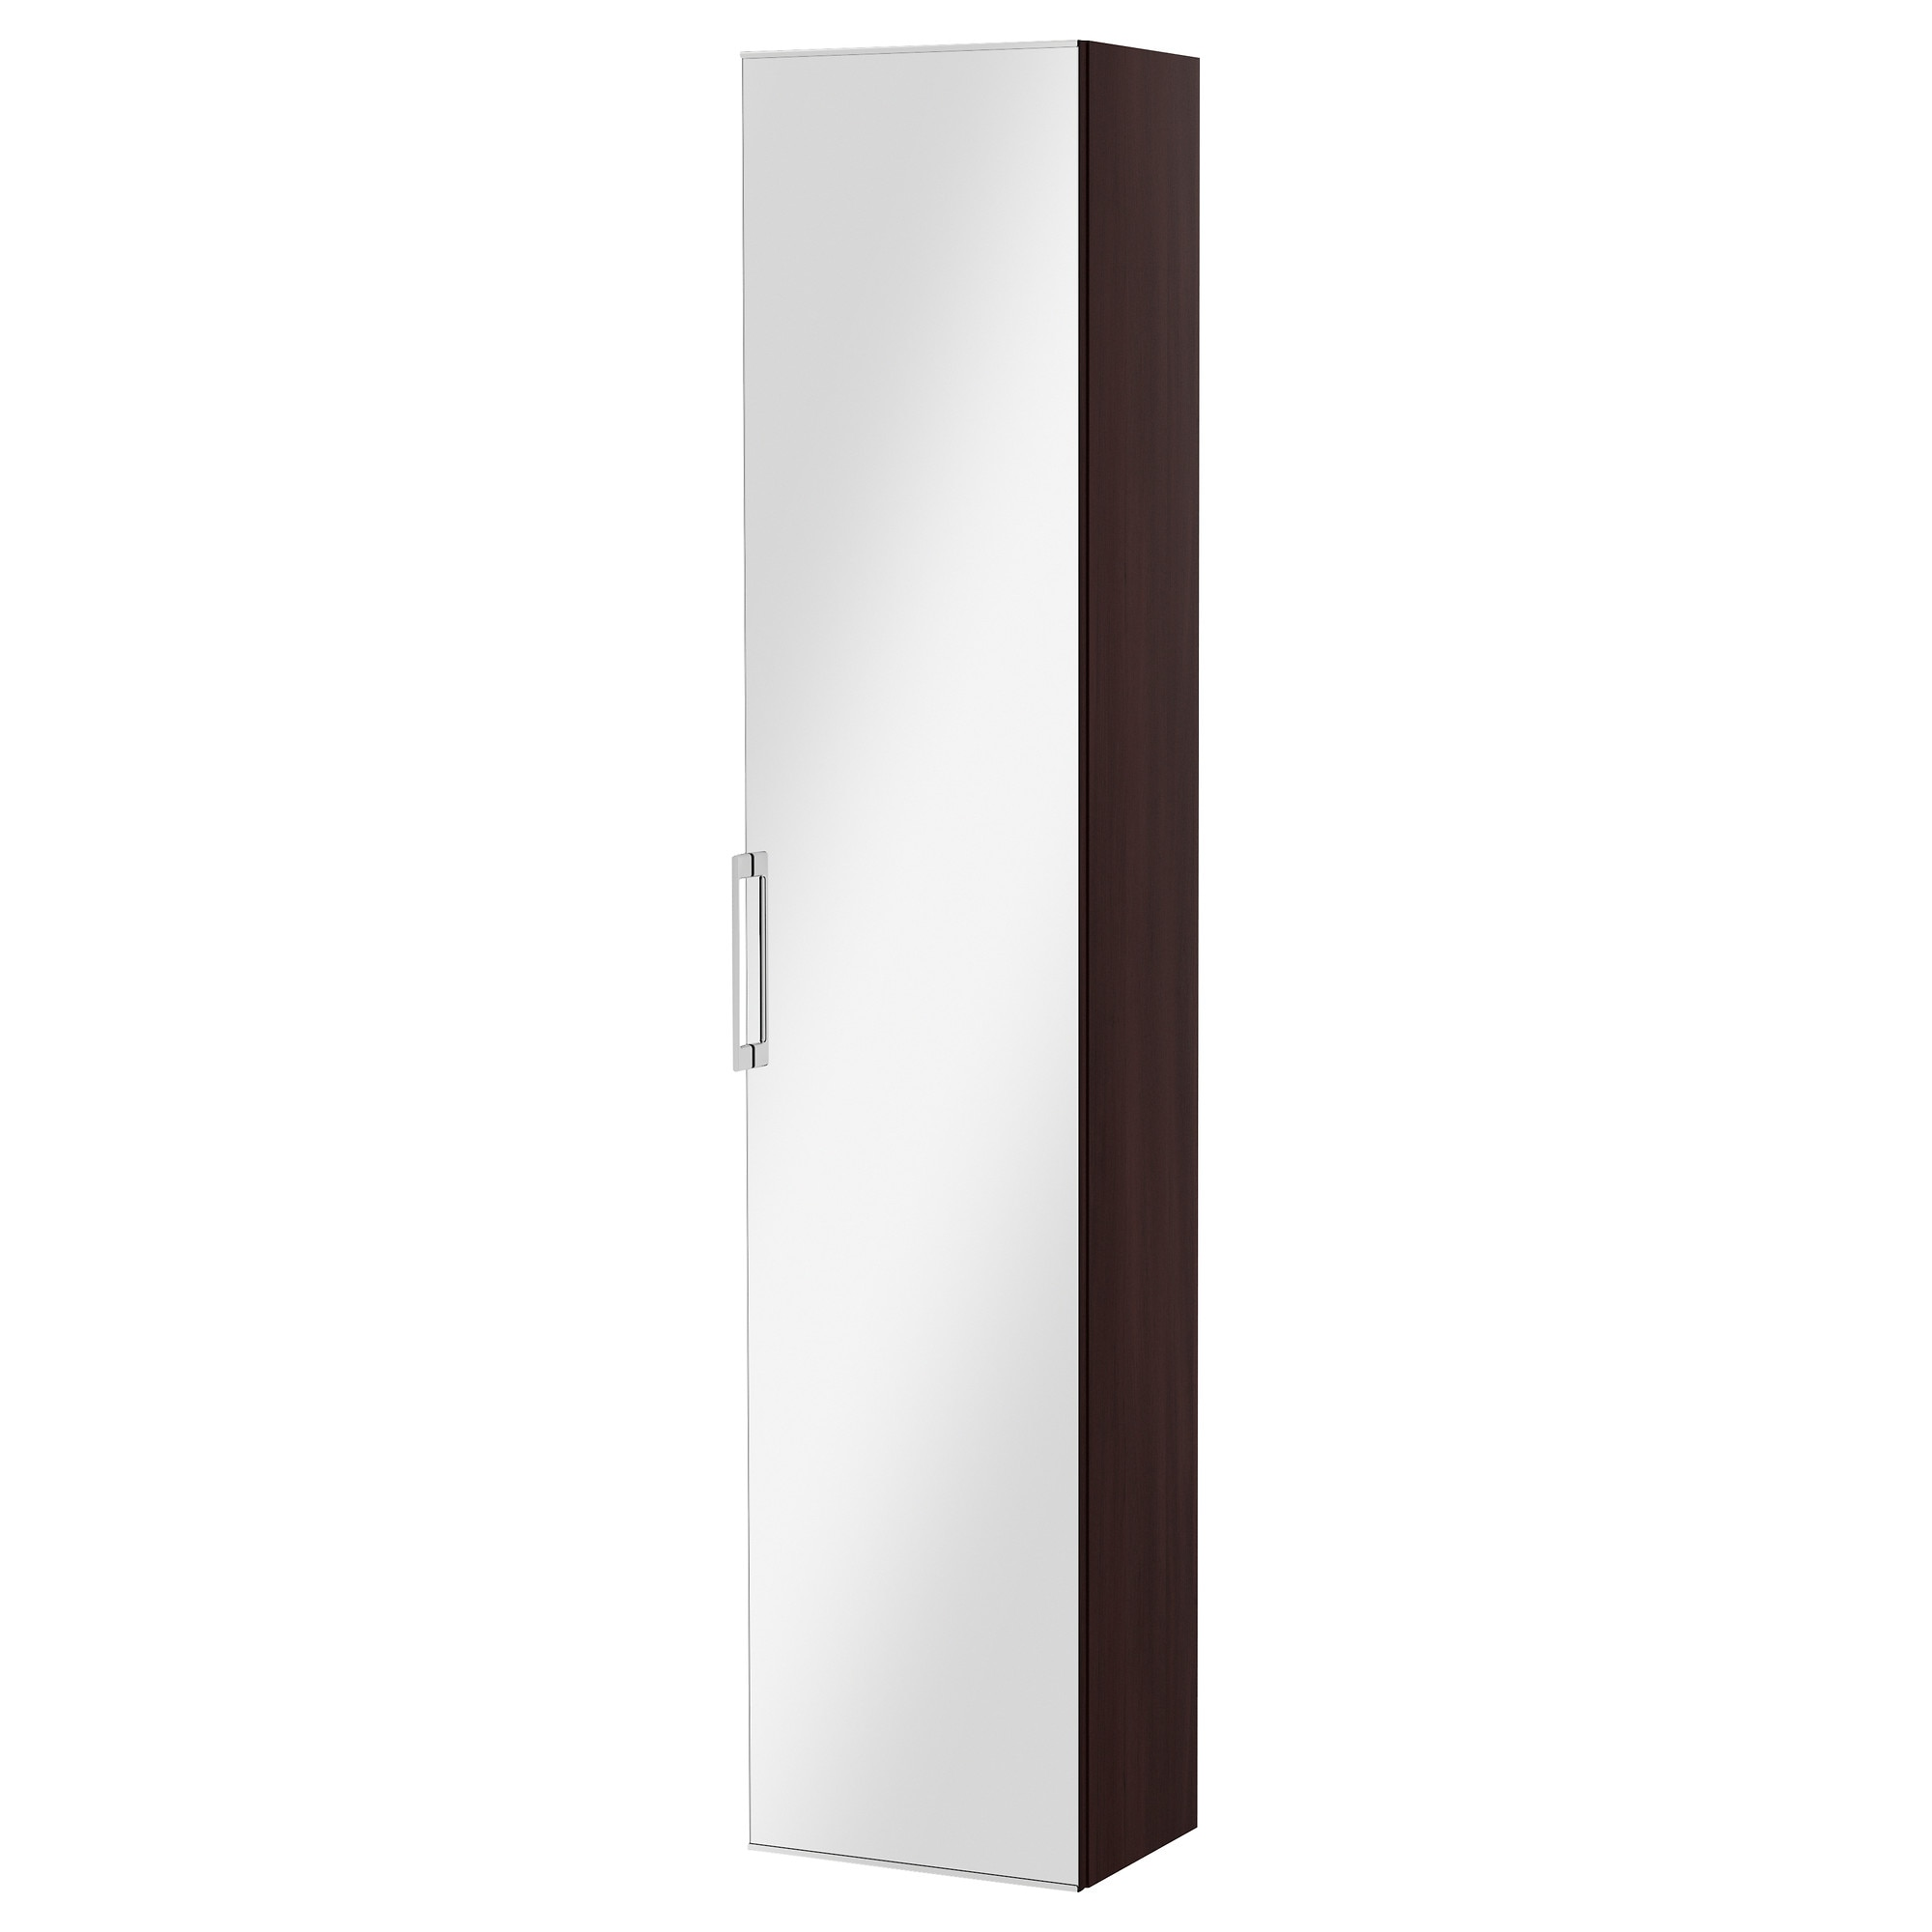 Bathroom wall cabinets ikea - Godmorgon High Cabinet With Mirror Door Walnut Effect Width 40 Cm Depth 32